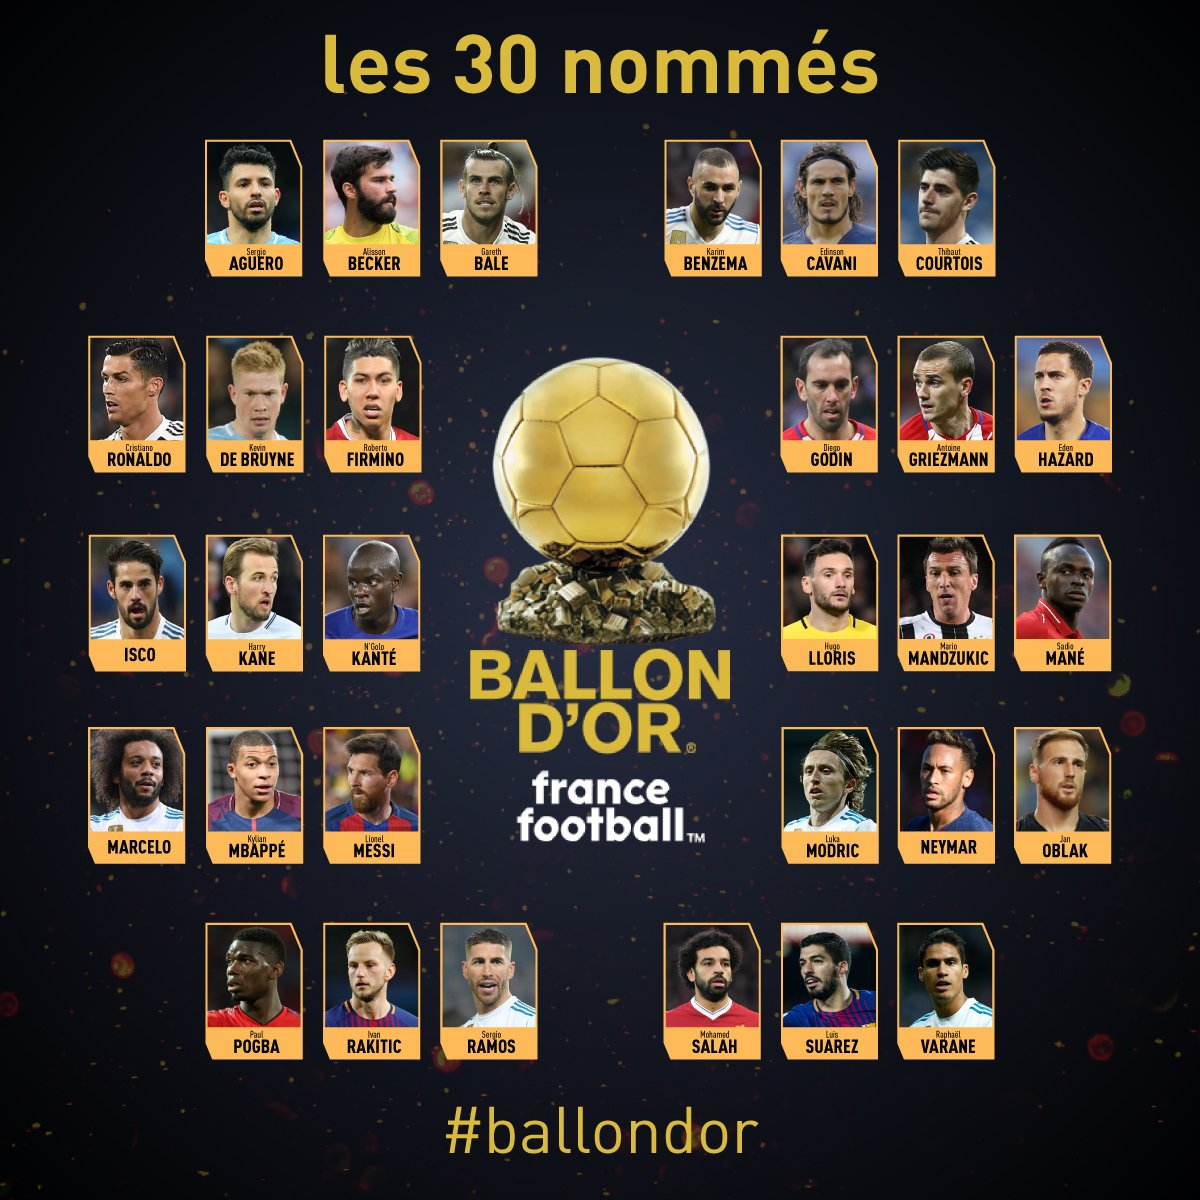 🔴 We have our 30 nominees for the 2018 Ballon d'Or France Football! #ballondor